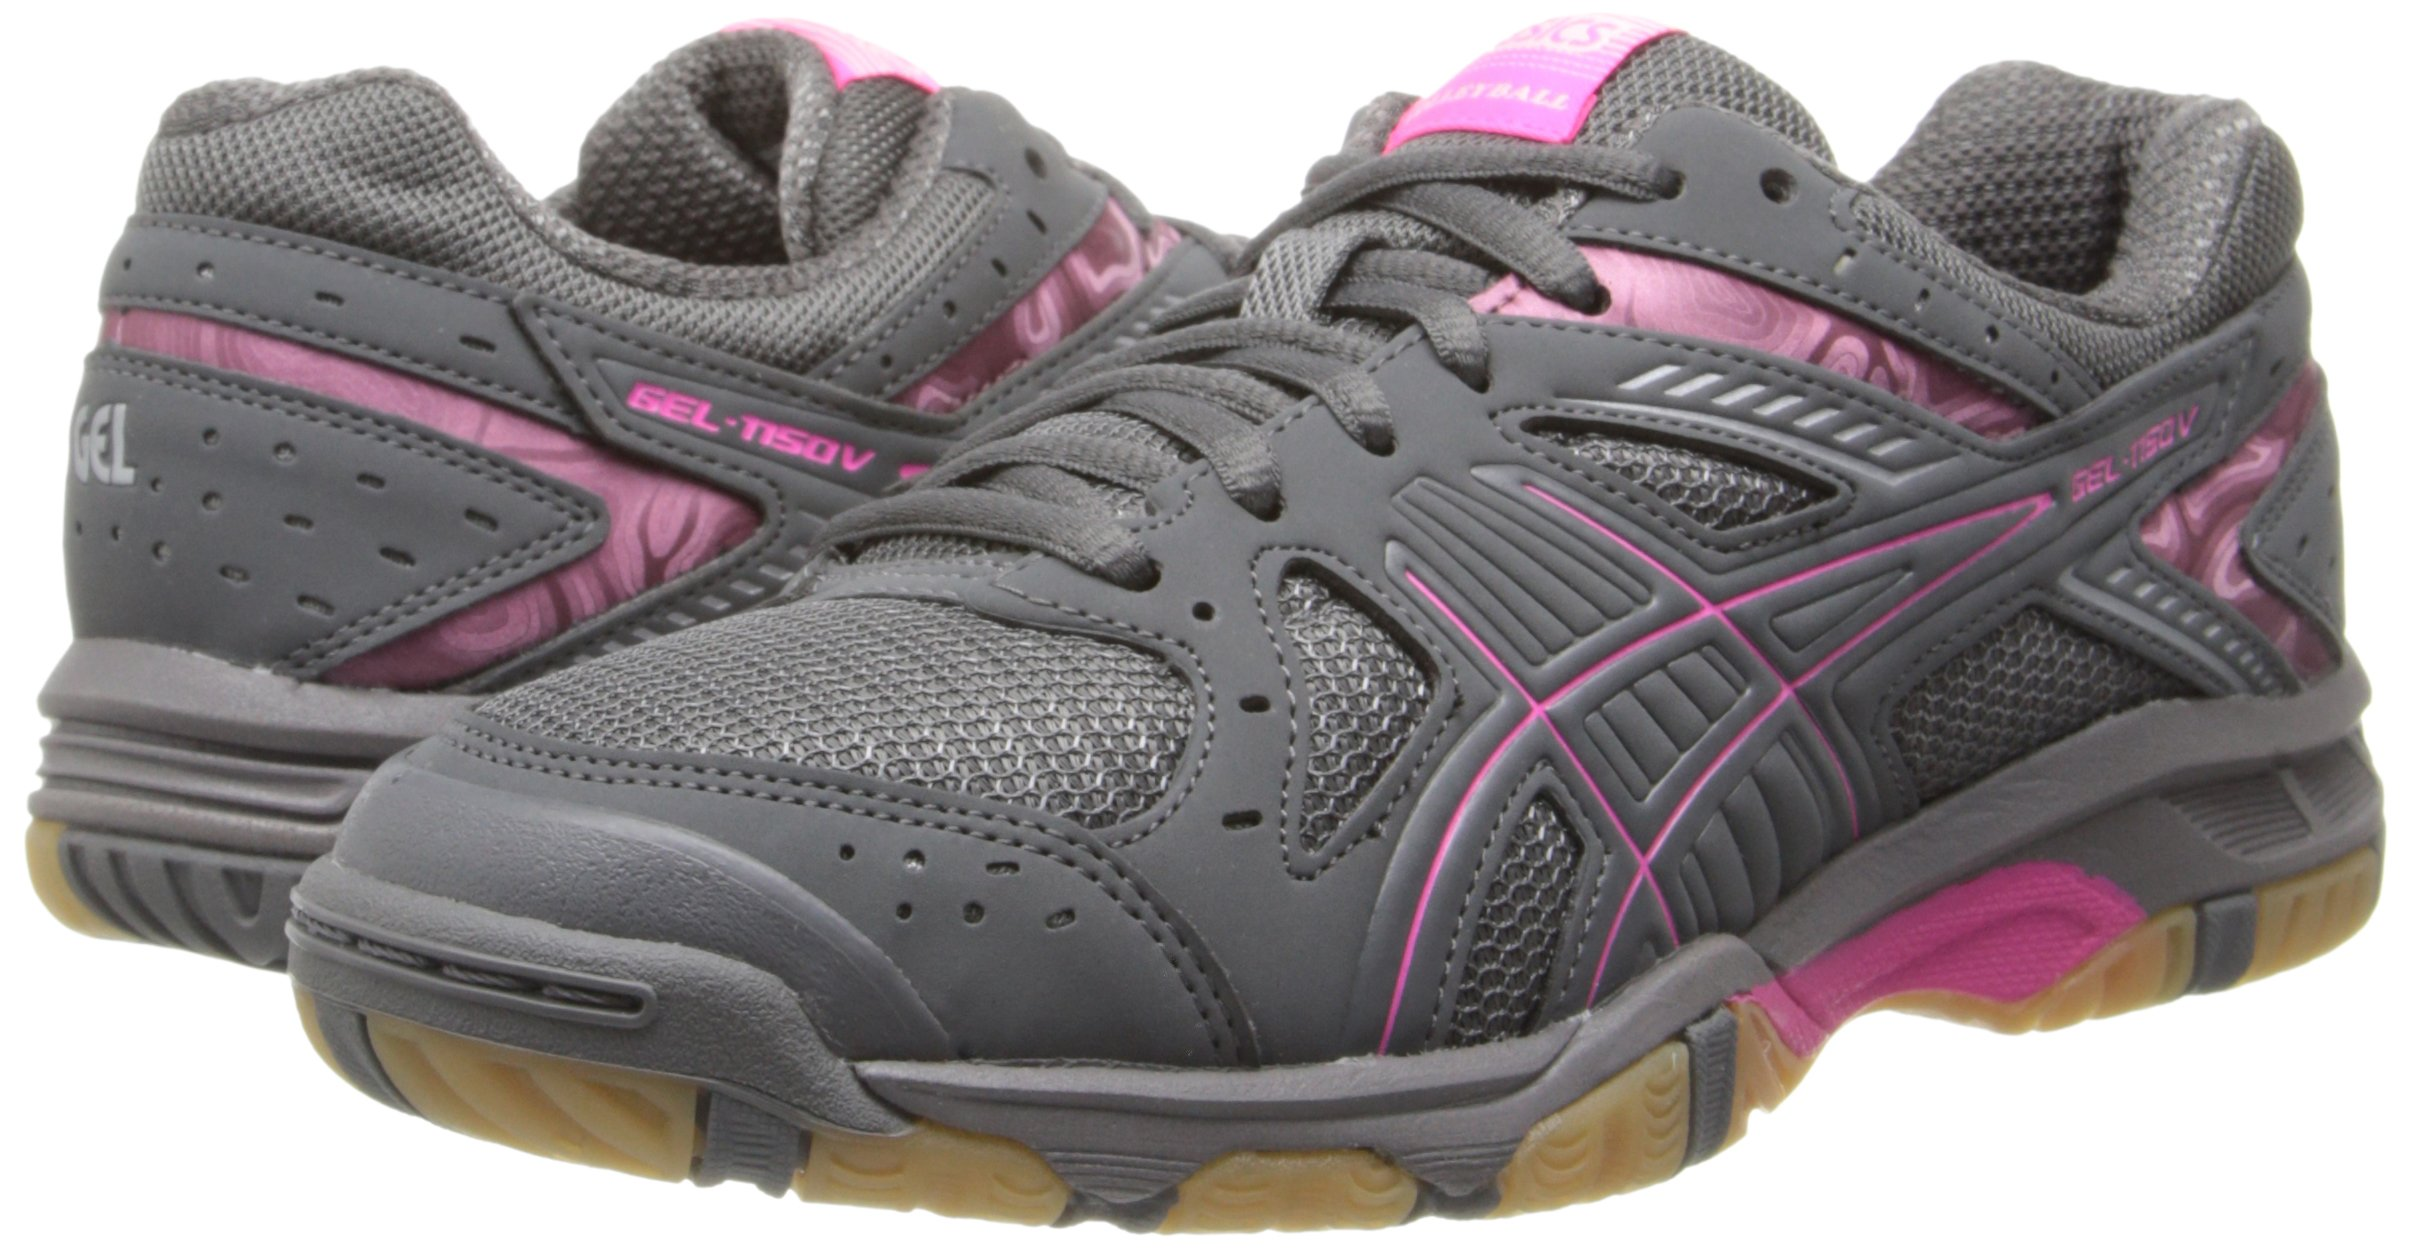 ASICS Women's Gel 1150V Volley Ball Shoe,Smoke/Knock Out Pink/Silver,8 M US by ASICS (Image #6)